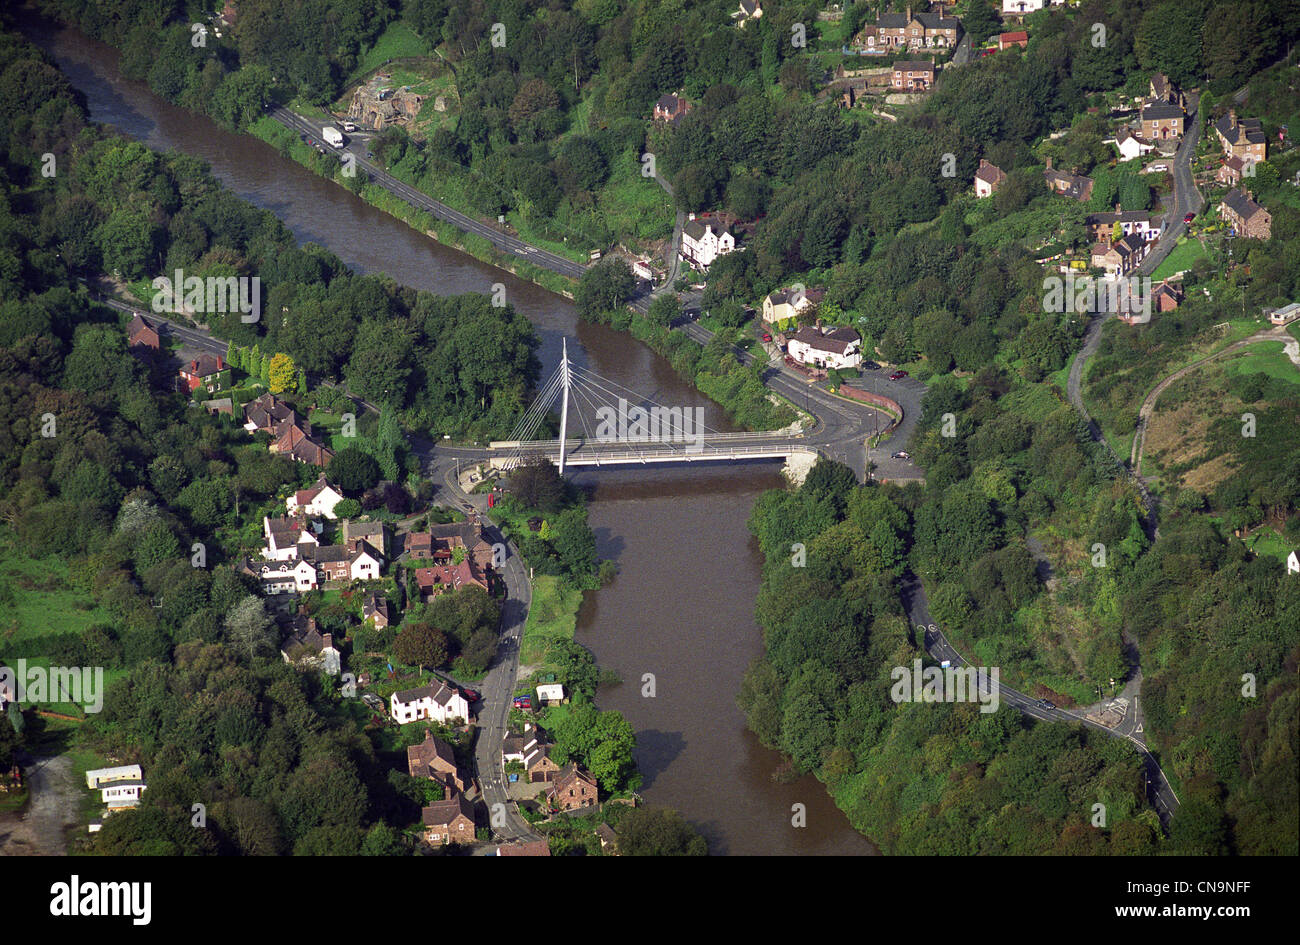 Aerial view of The Free Bridge Jackfield featuring Waterloo Rd and Wesley Rd Telford Shropshire England Uk Autumn - Stock Image